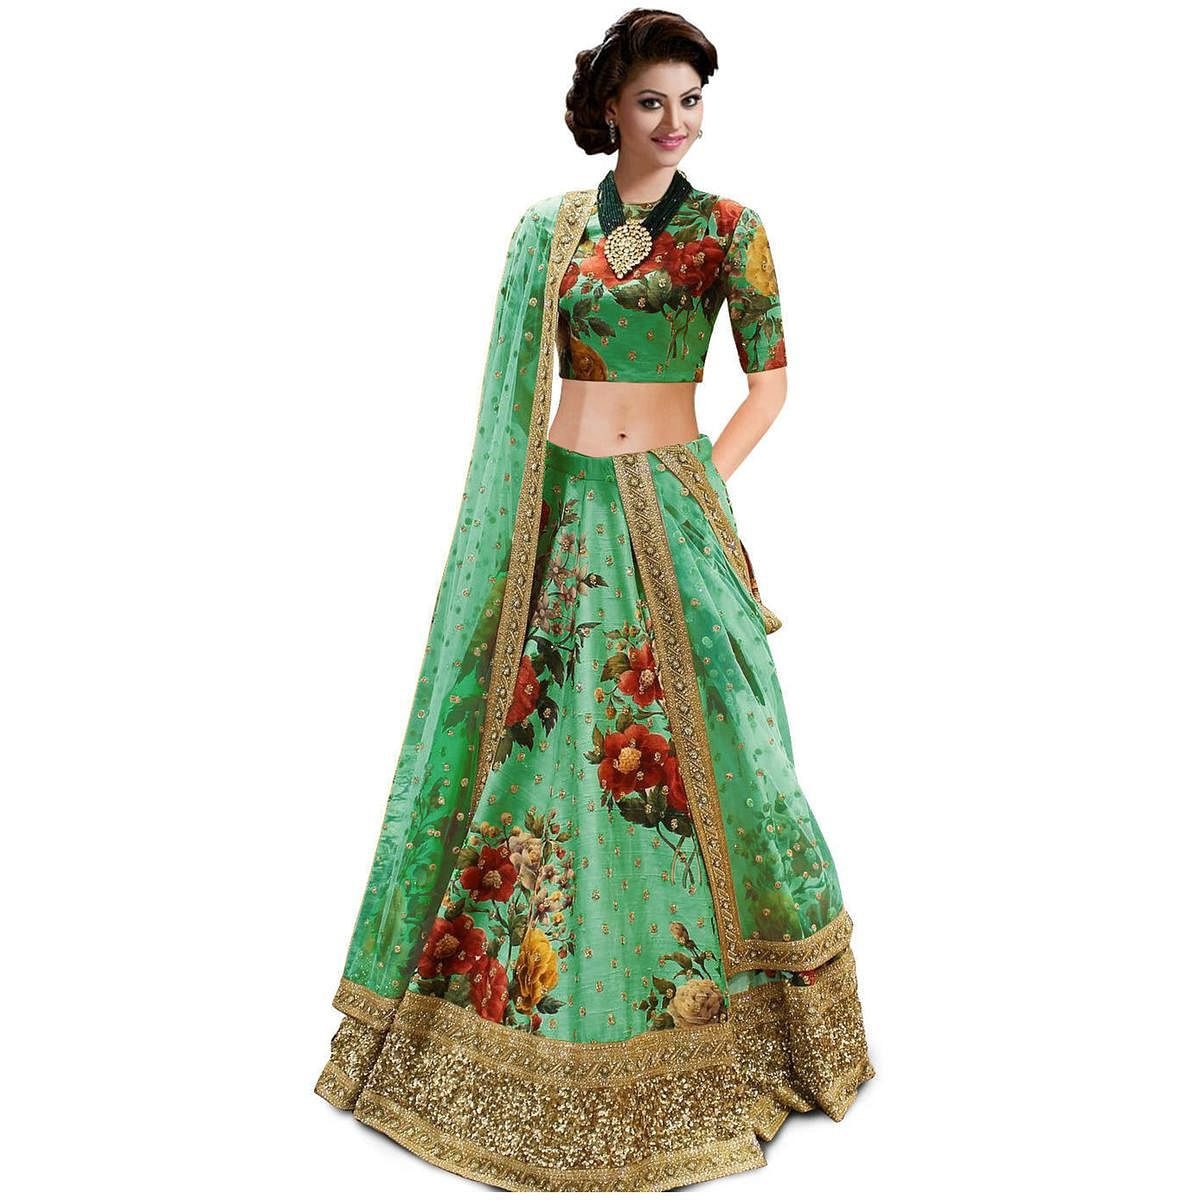 Desiring Green Colored Partywear Designer Embroidered Art Silk Lehenga Choli